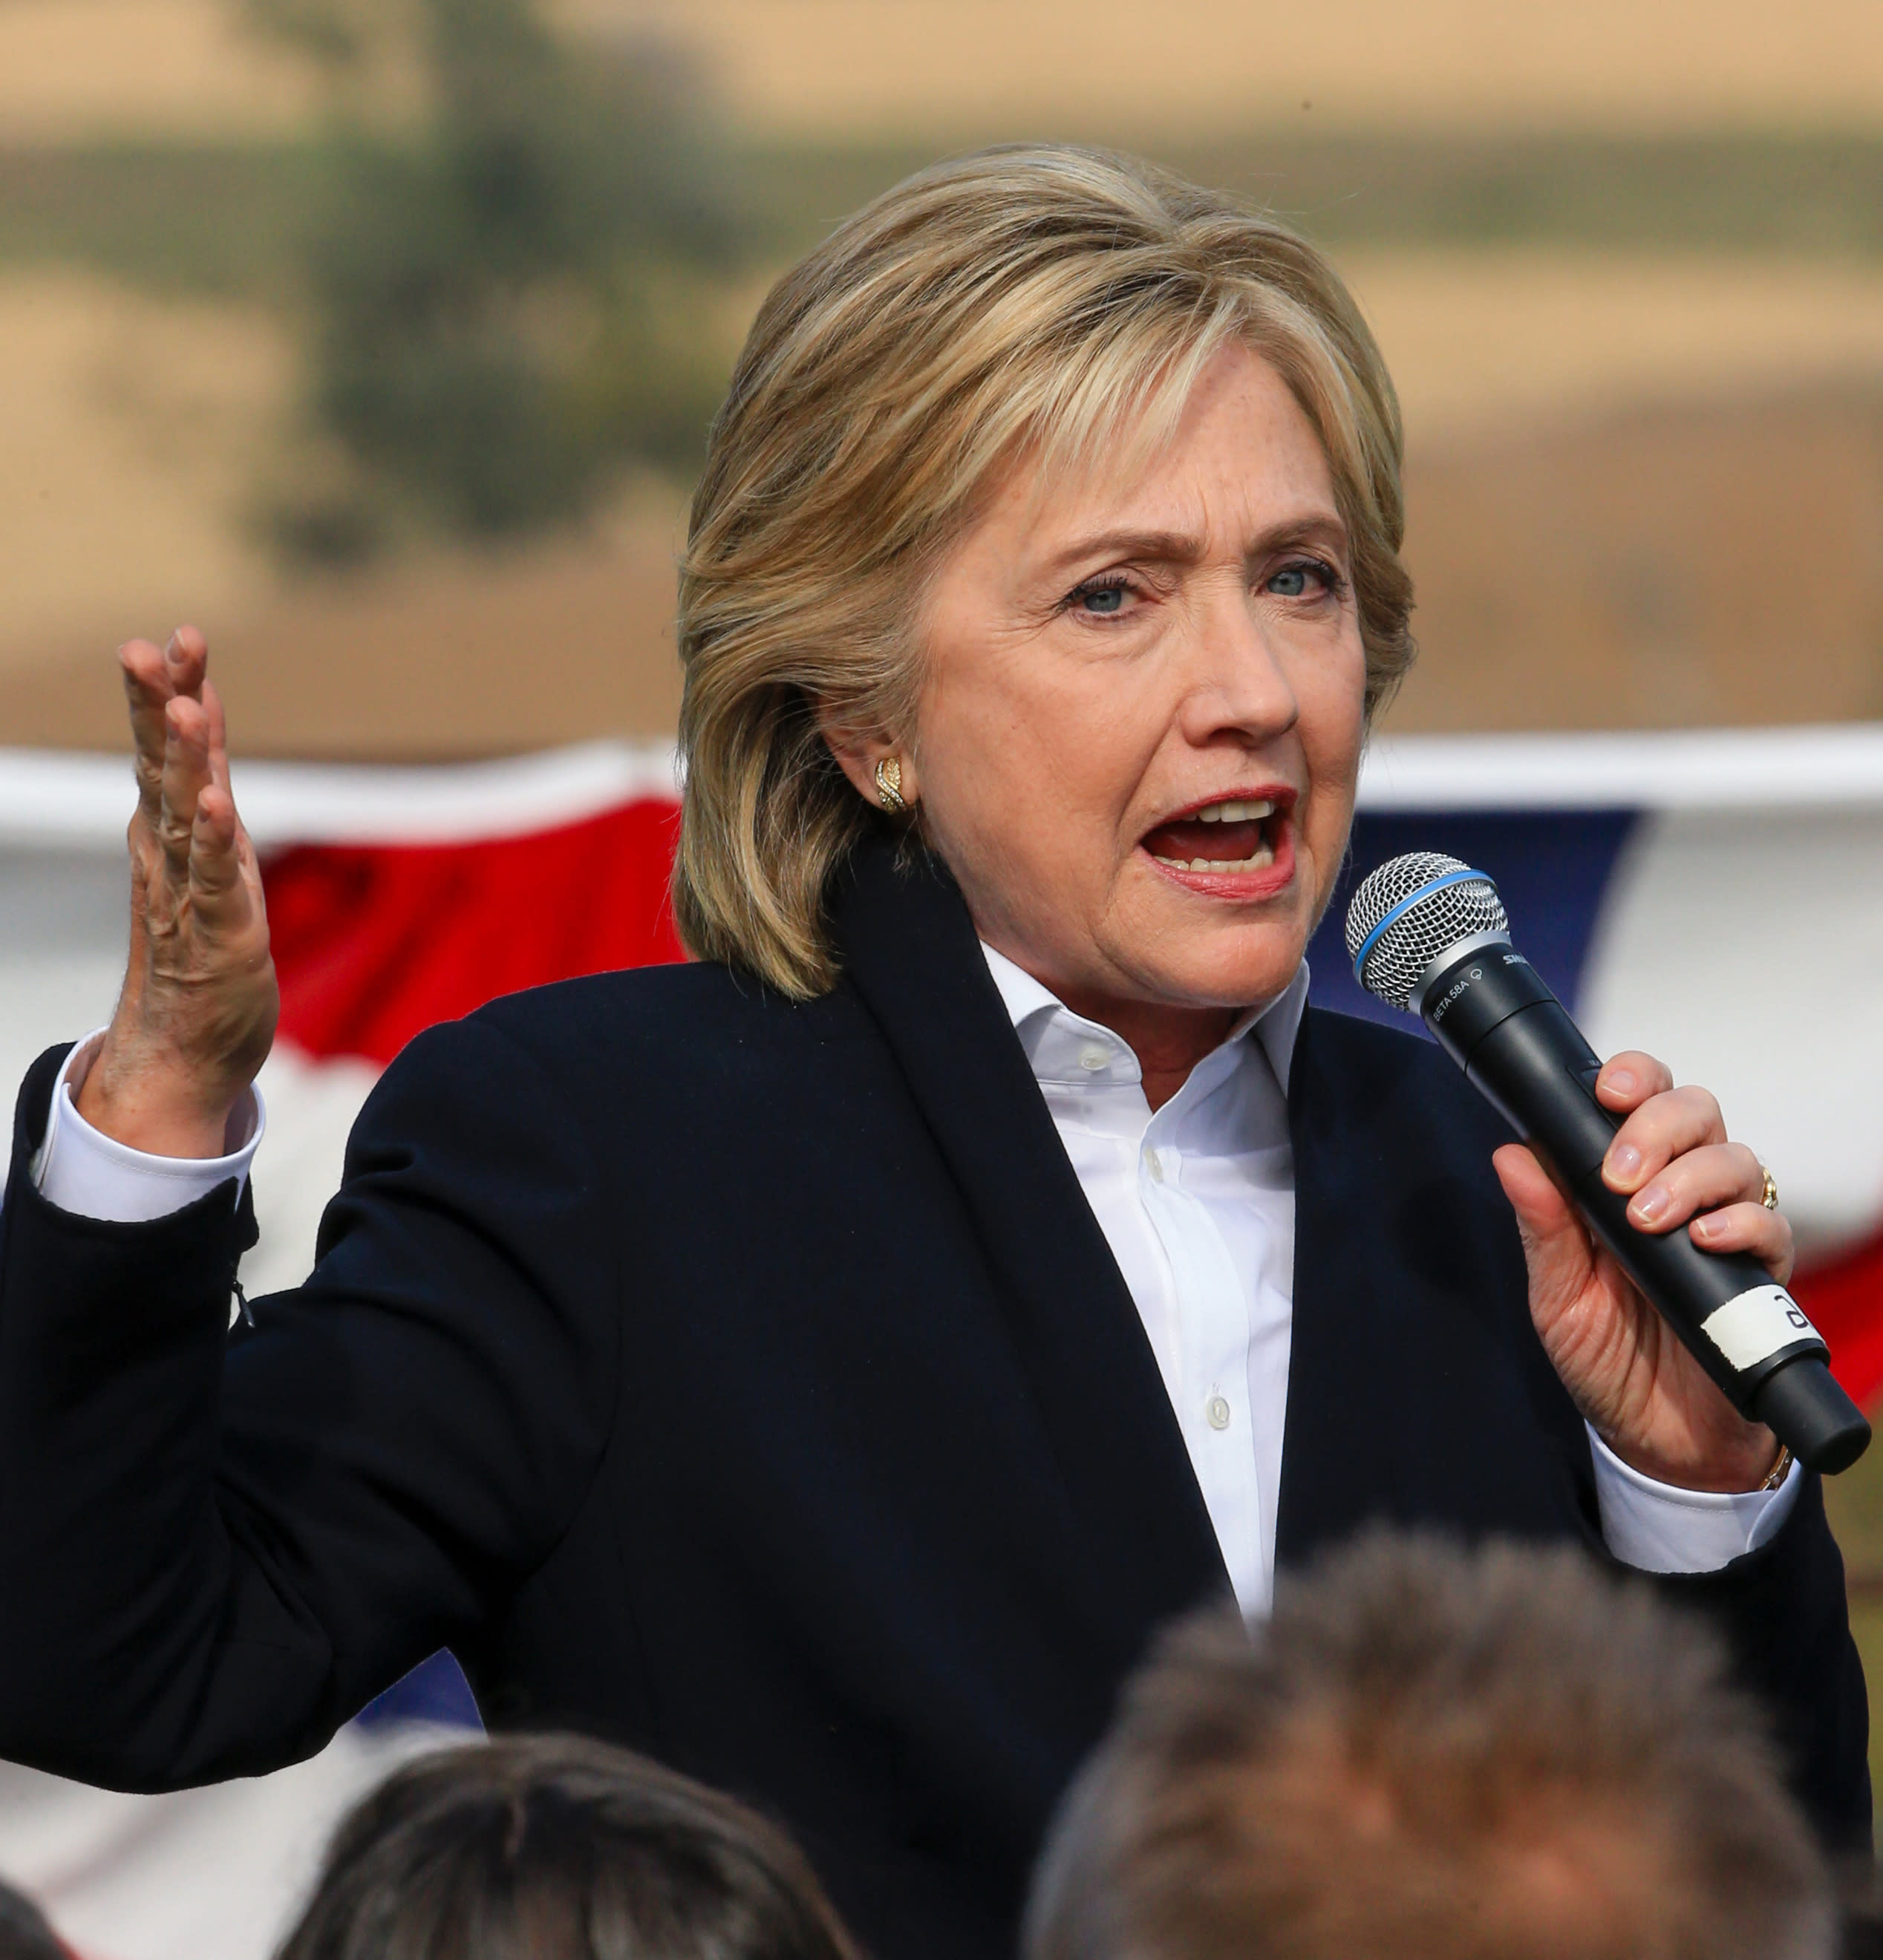 Clinton breaks away from Obama, opposes Pacific trade deal